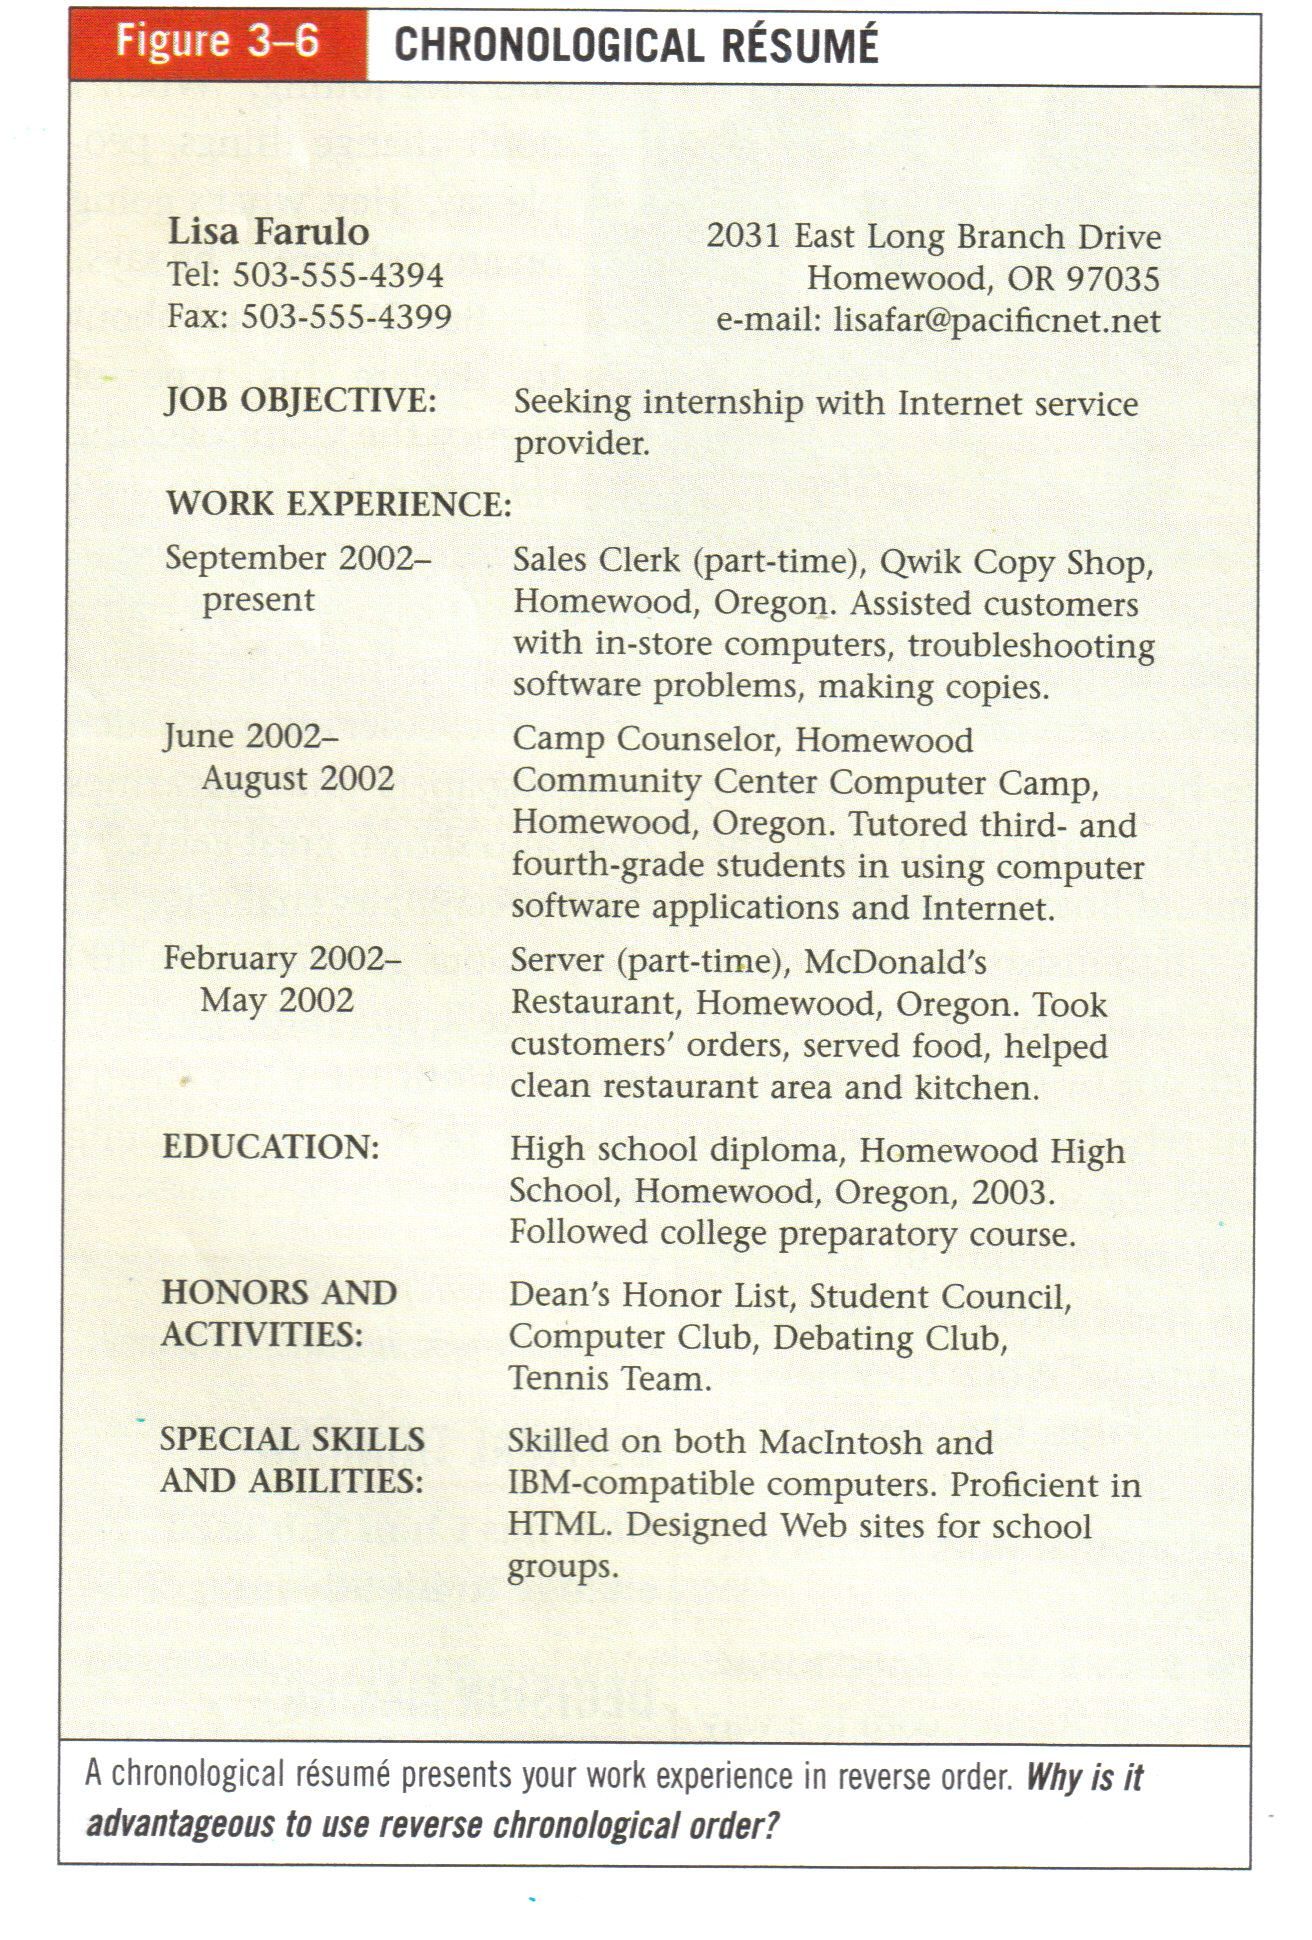 Sample Chronological Resume  Sample Chronological Resume Format